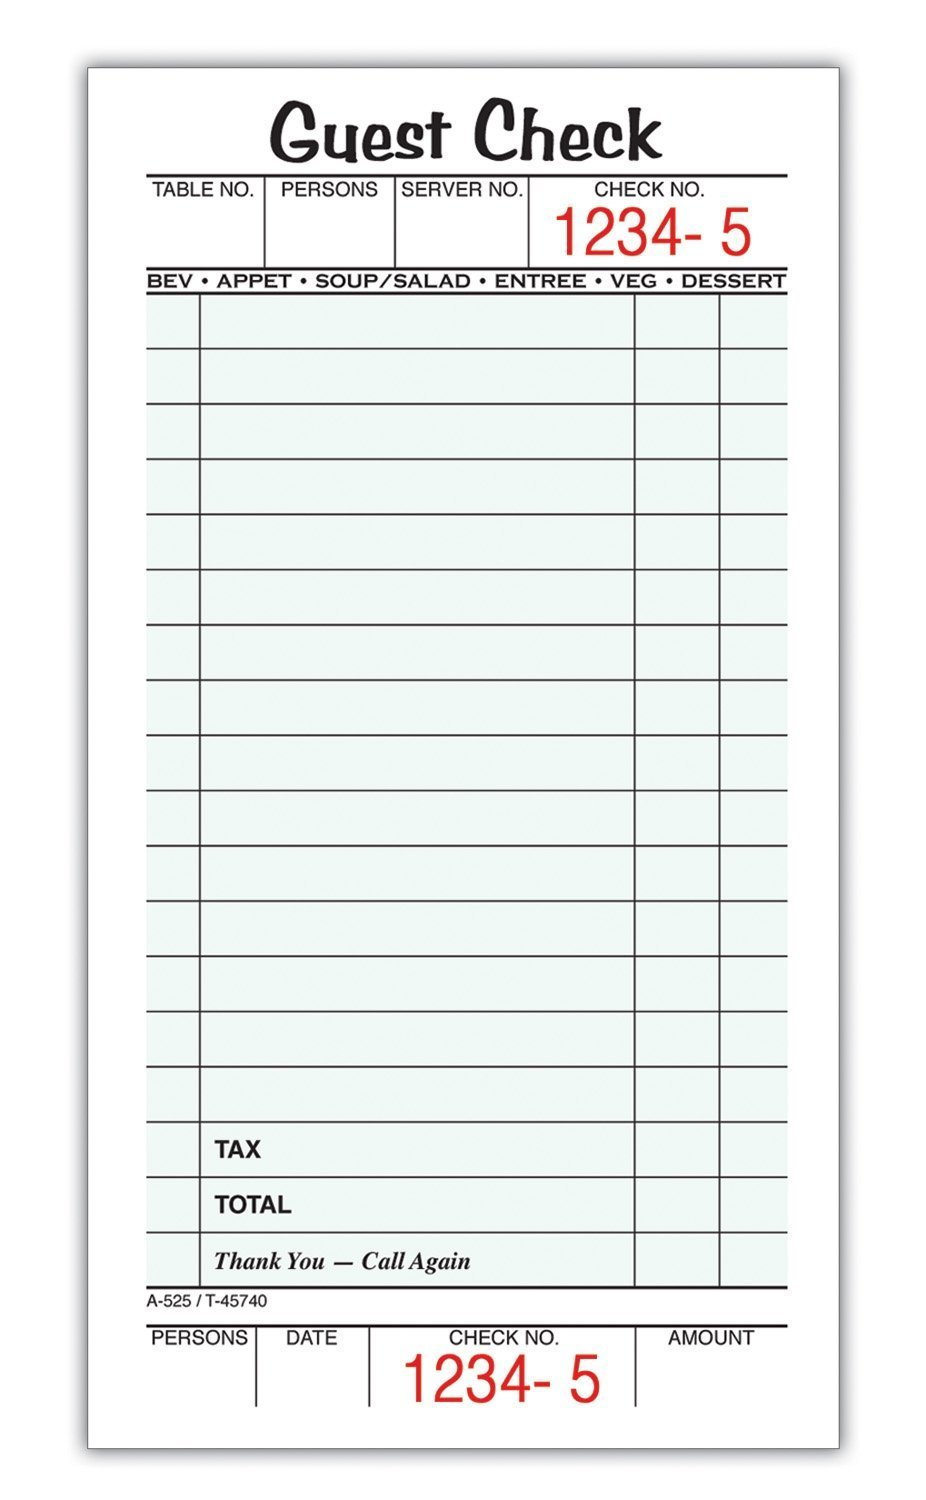 Adams Guest Check Pads, Single Part, 3.4 x 6.75 Inches, White, 50 Checks per Pad, 10 Pads per Pack (525SW) TOPS Business Forms Inc.